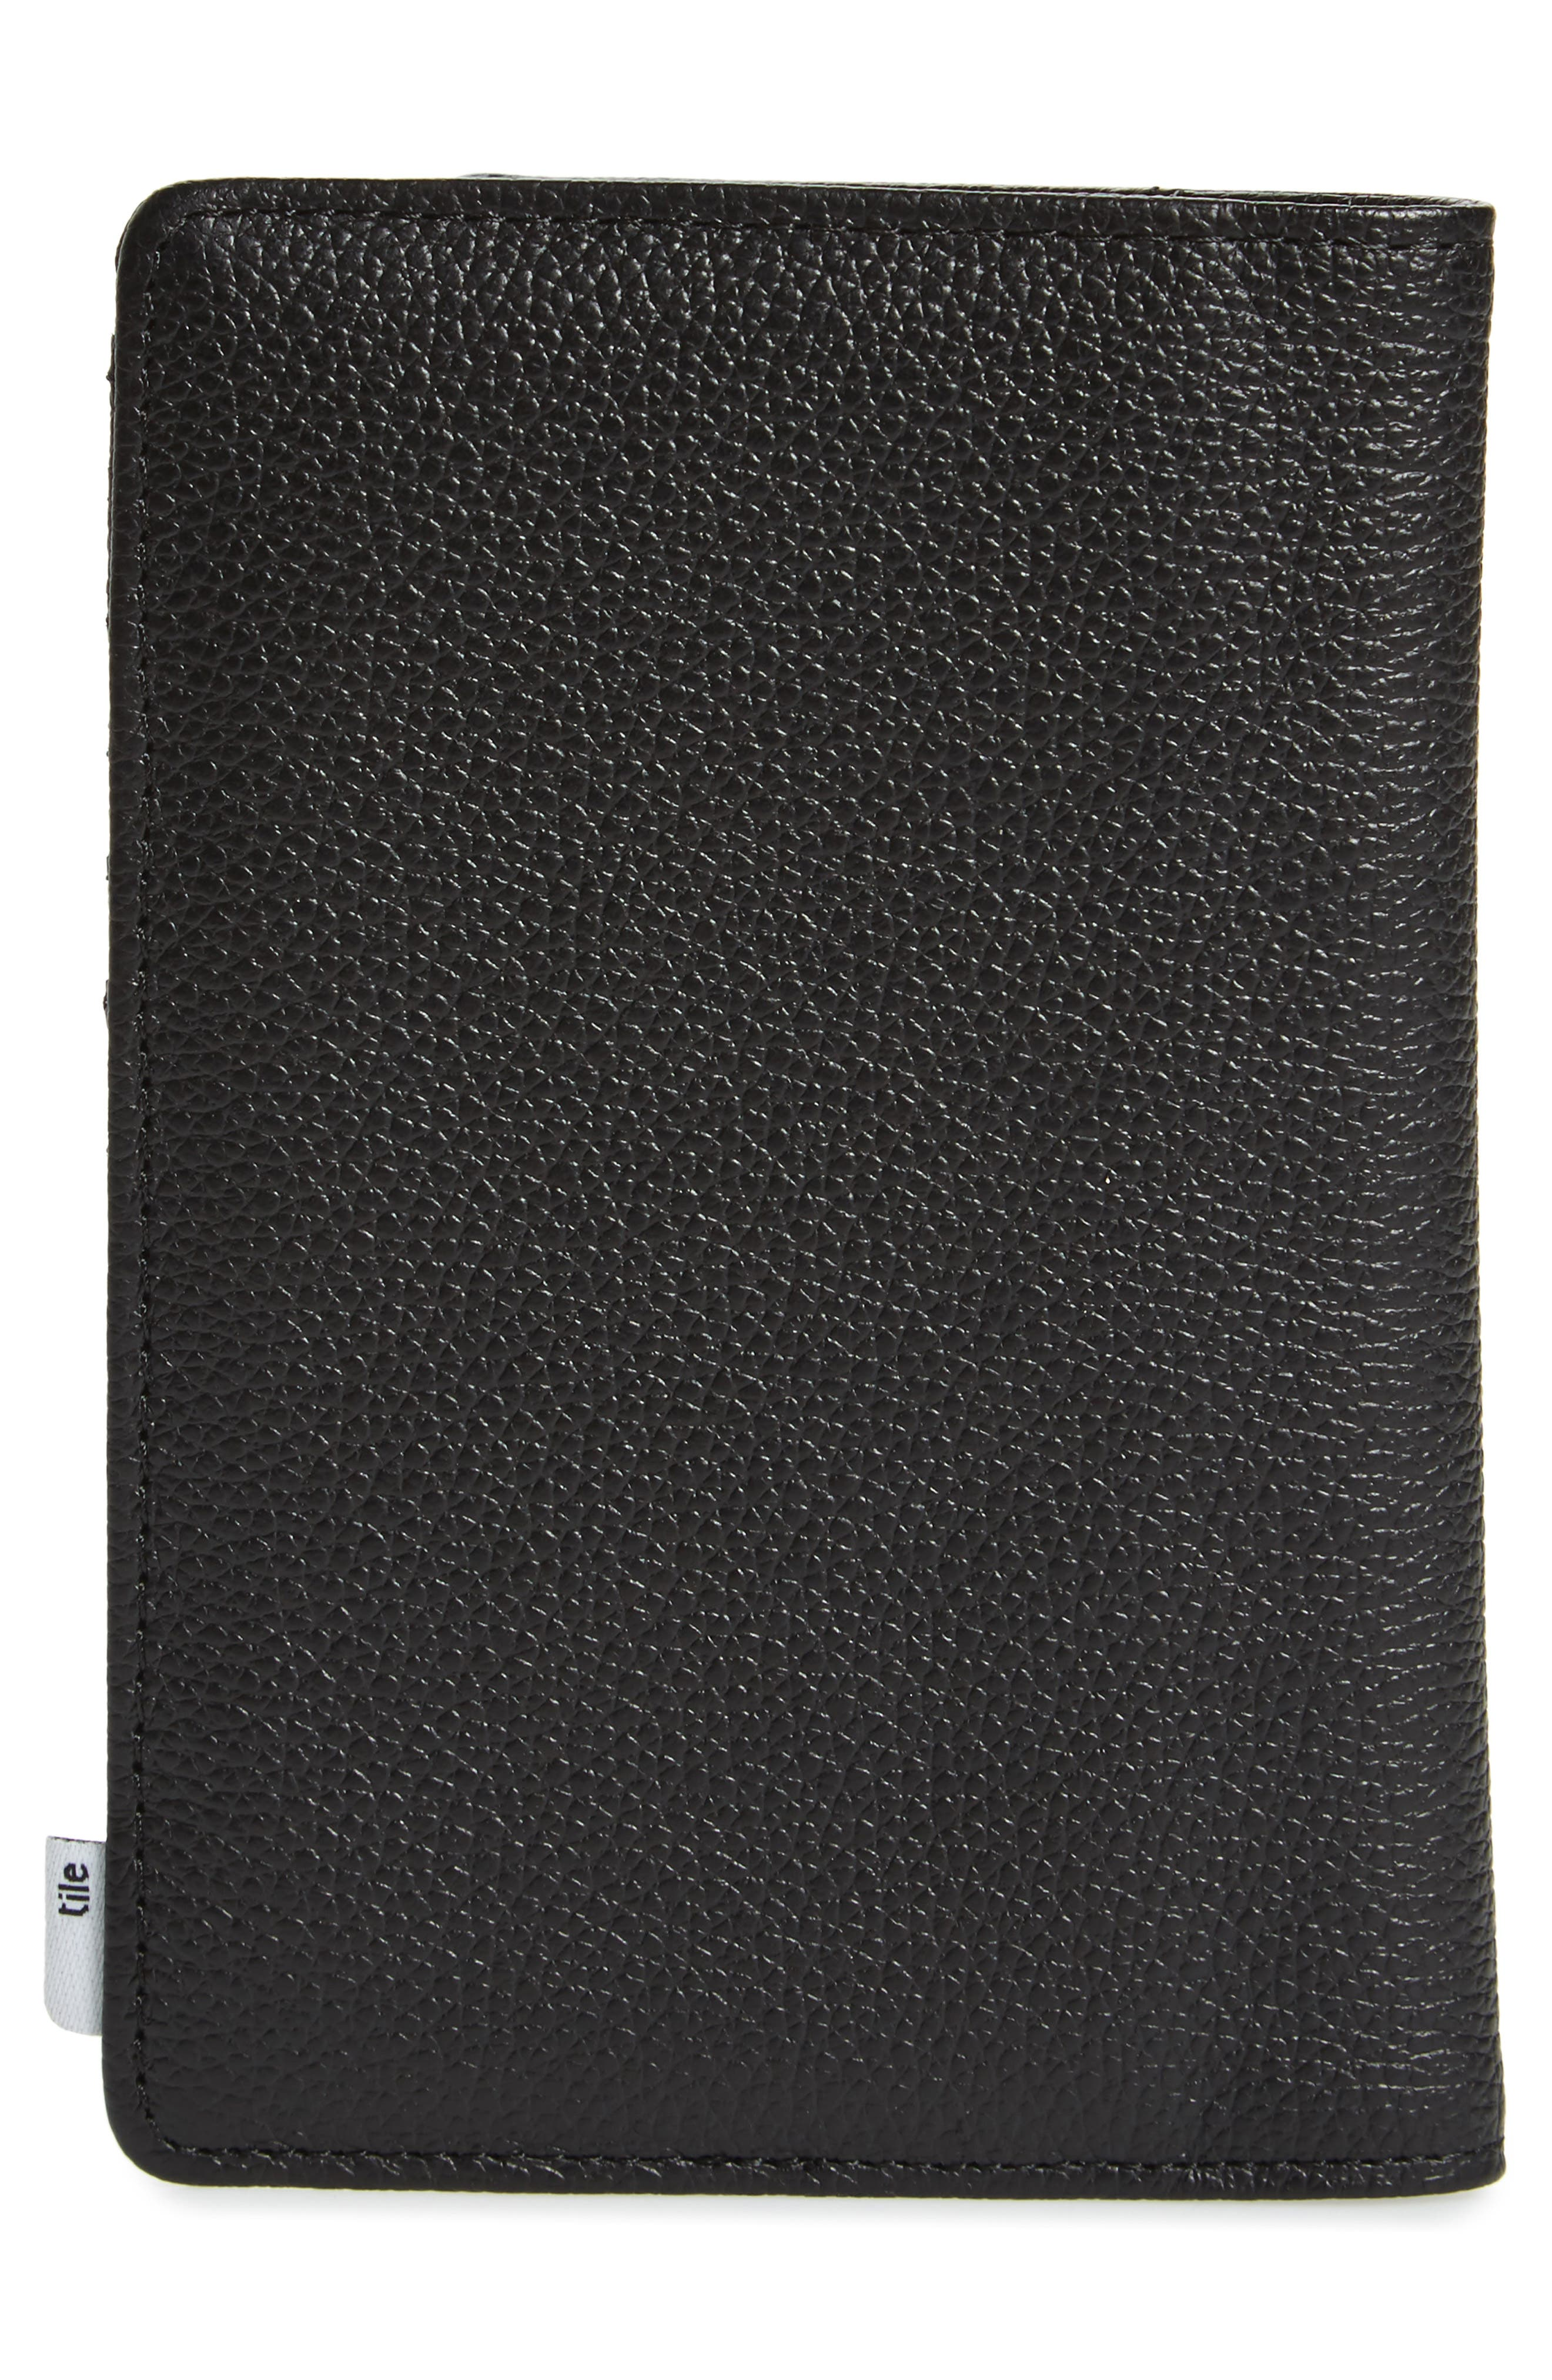 Tile Search Slim Vertical Leather Wallet,                             Alternate thumbnail 3, color,                             BLACK PEBBLED LEATHER